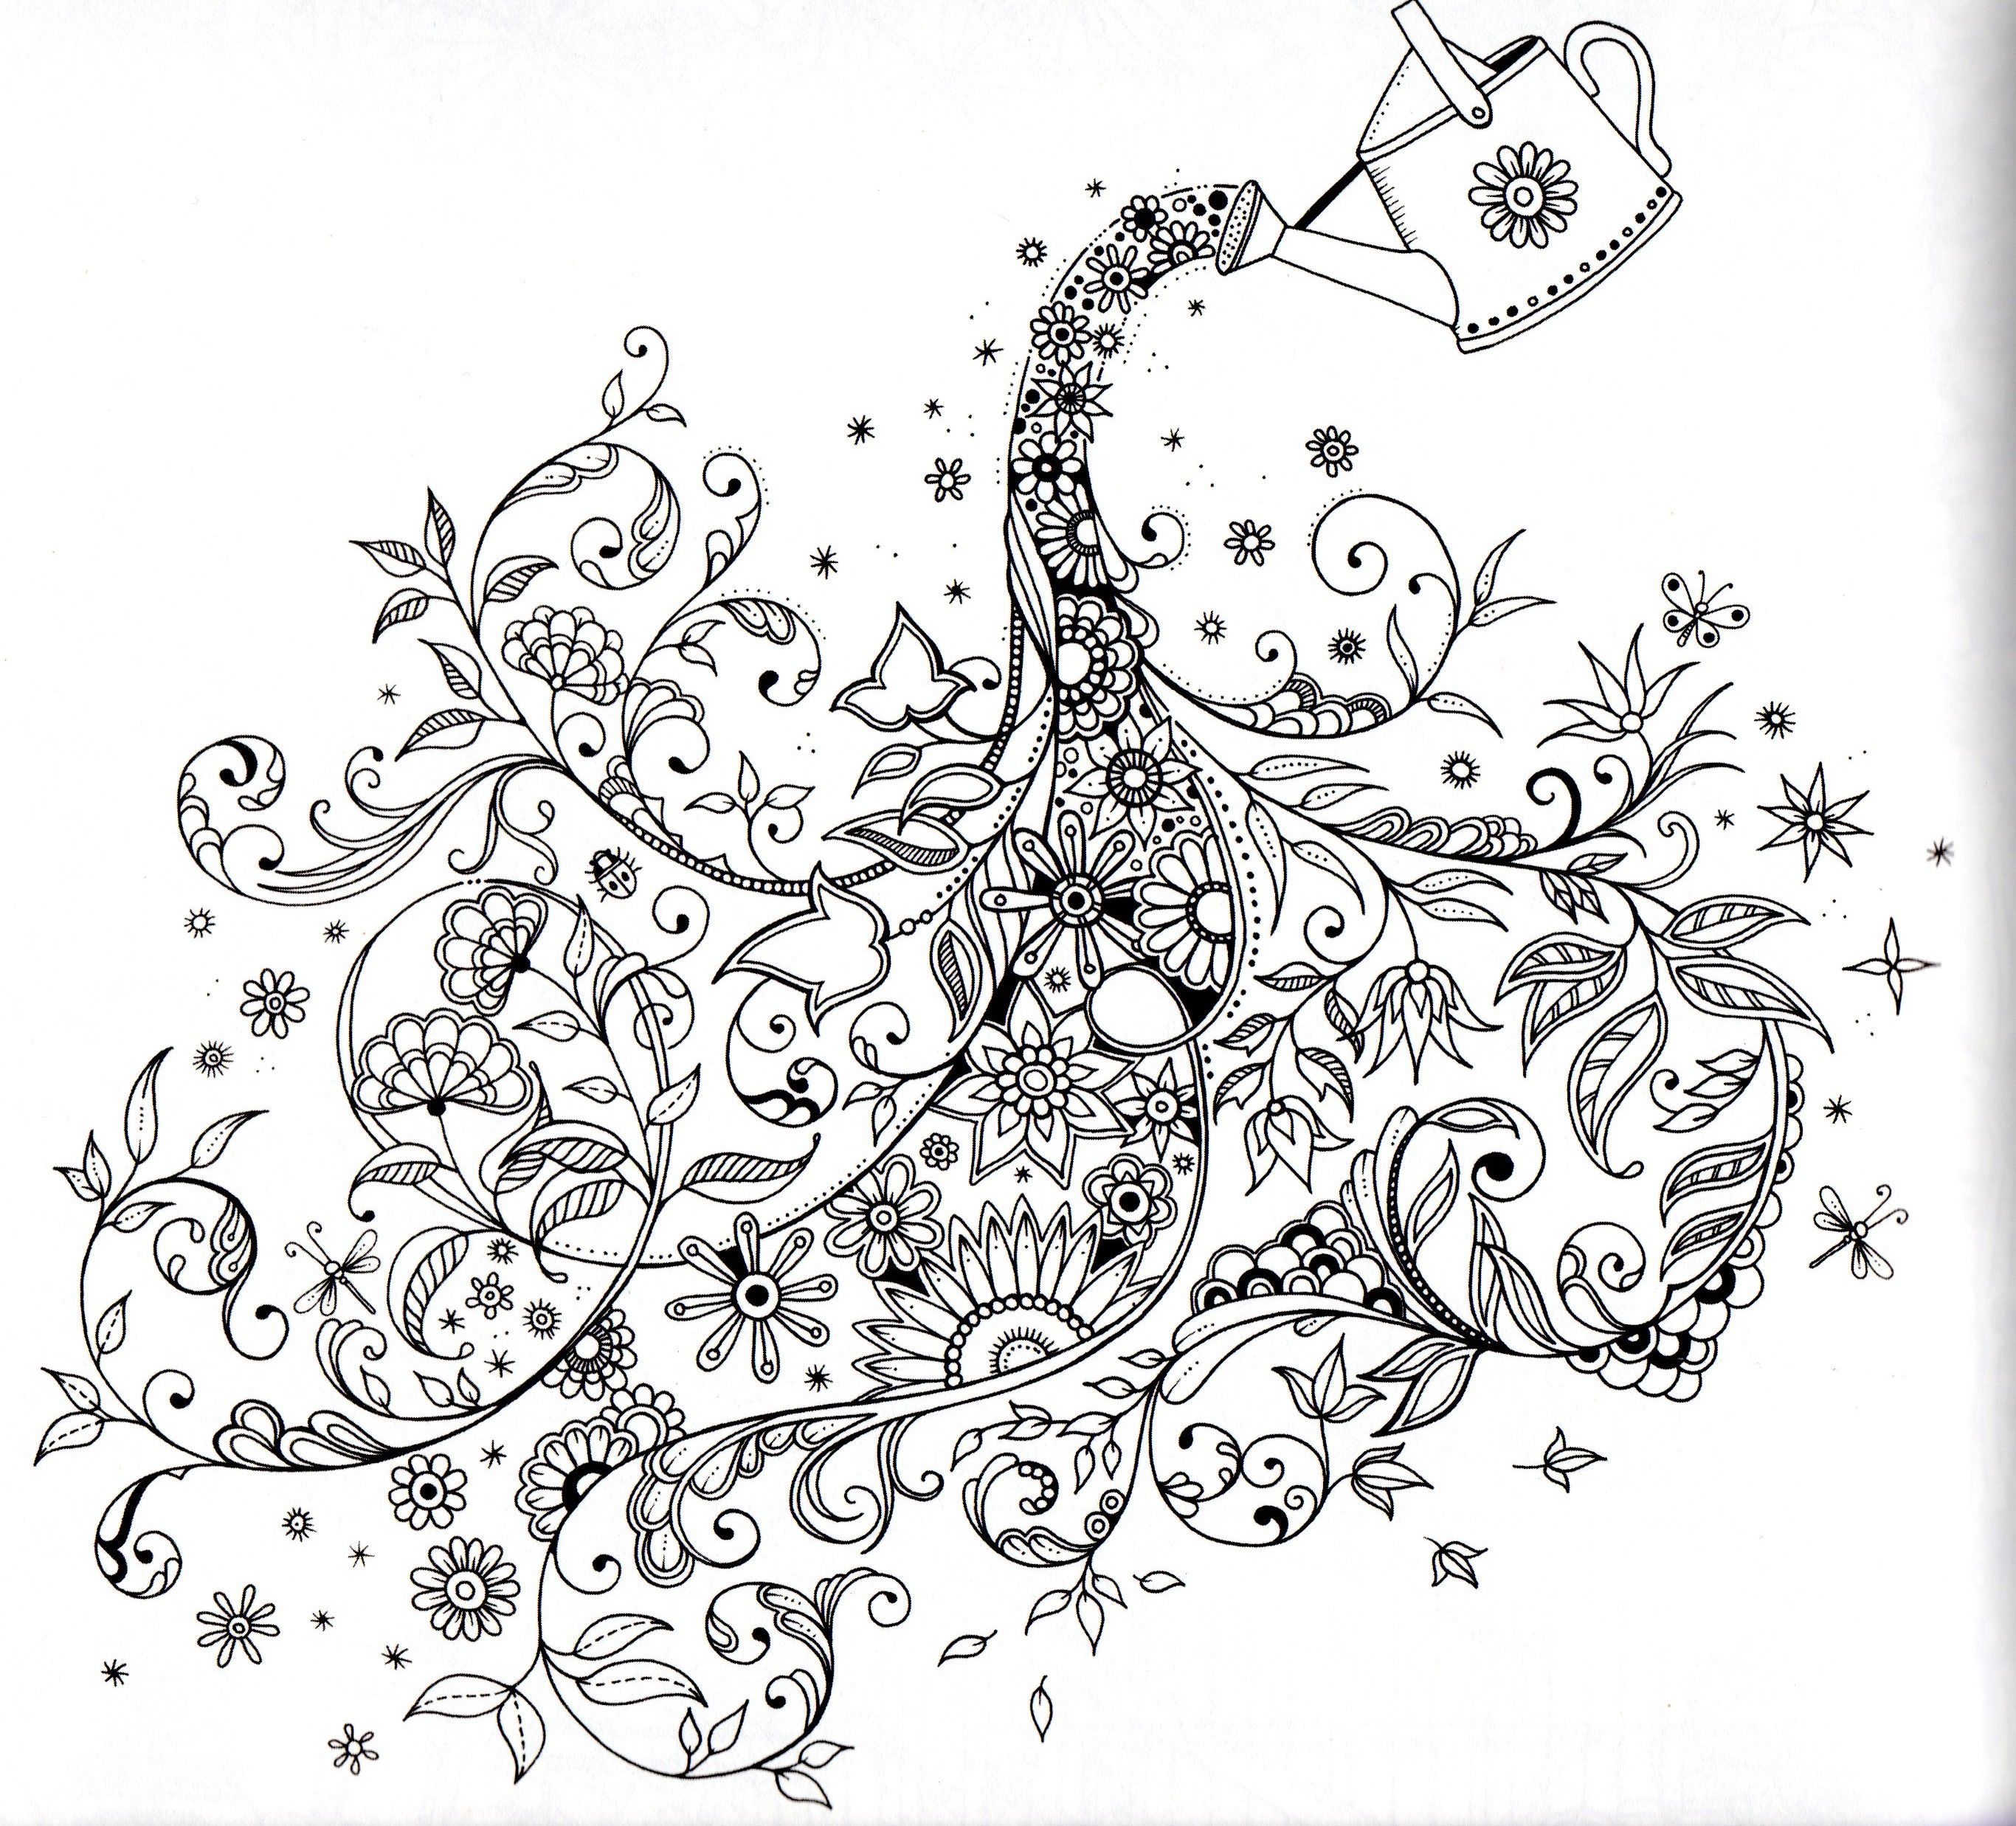 Secret Garden Johanna Basford Watering The Flowers Abstract Doodle Zentangle Coloring Pages